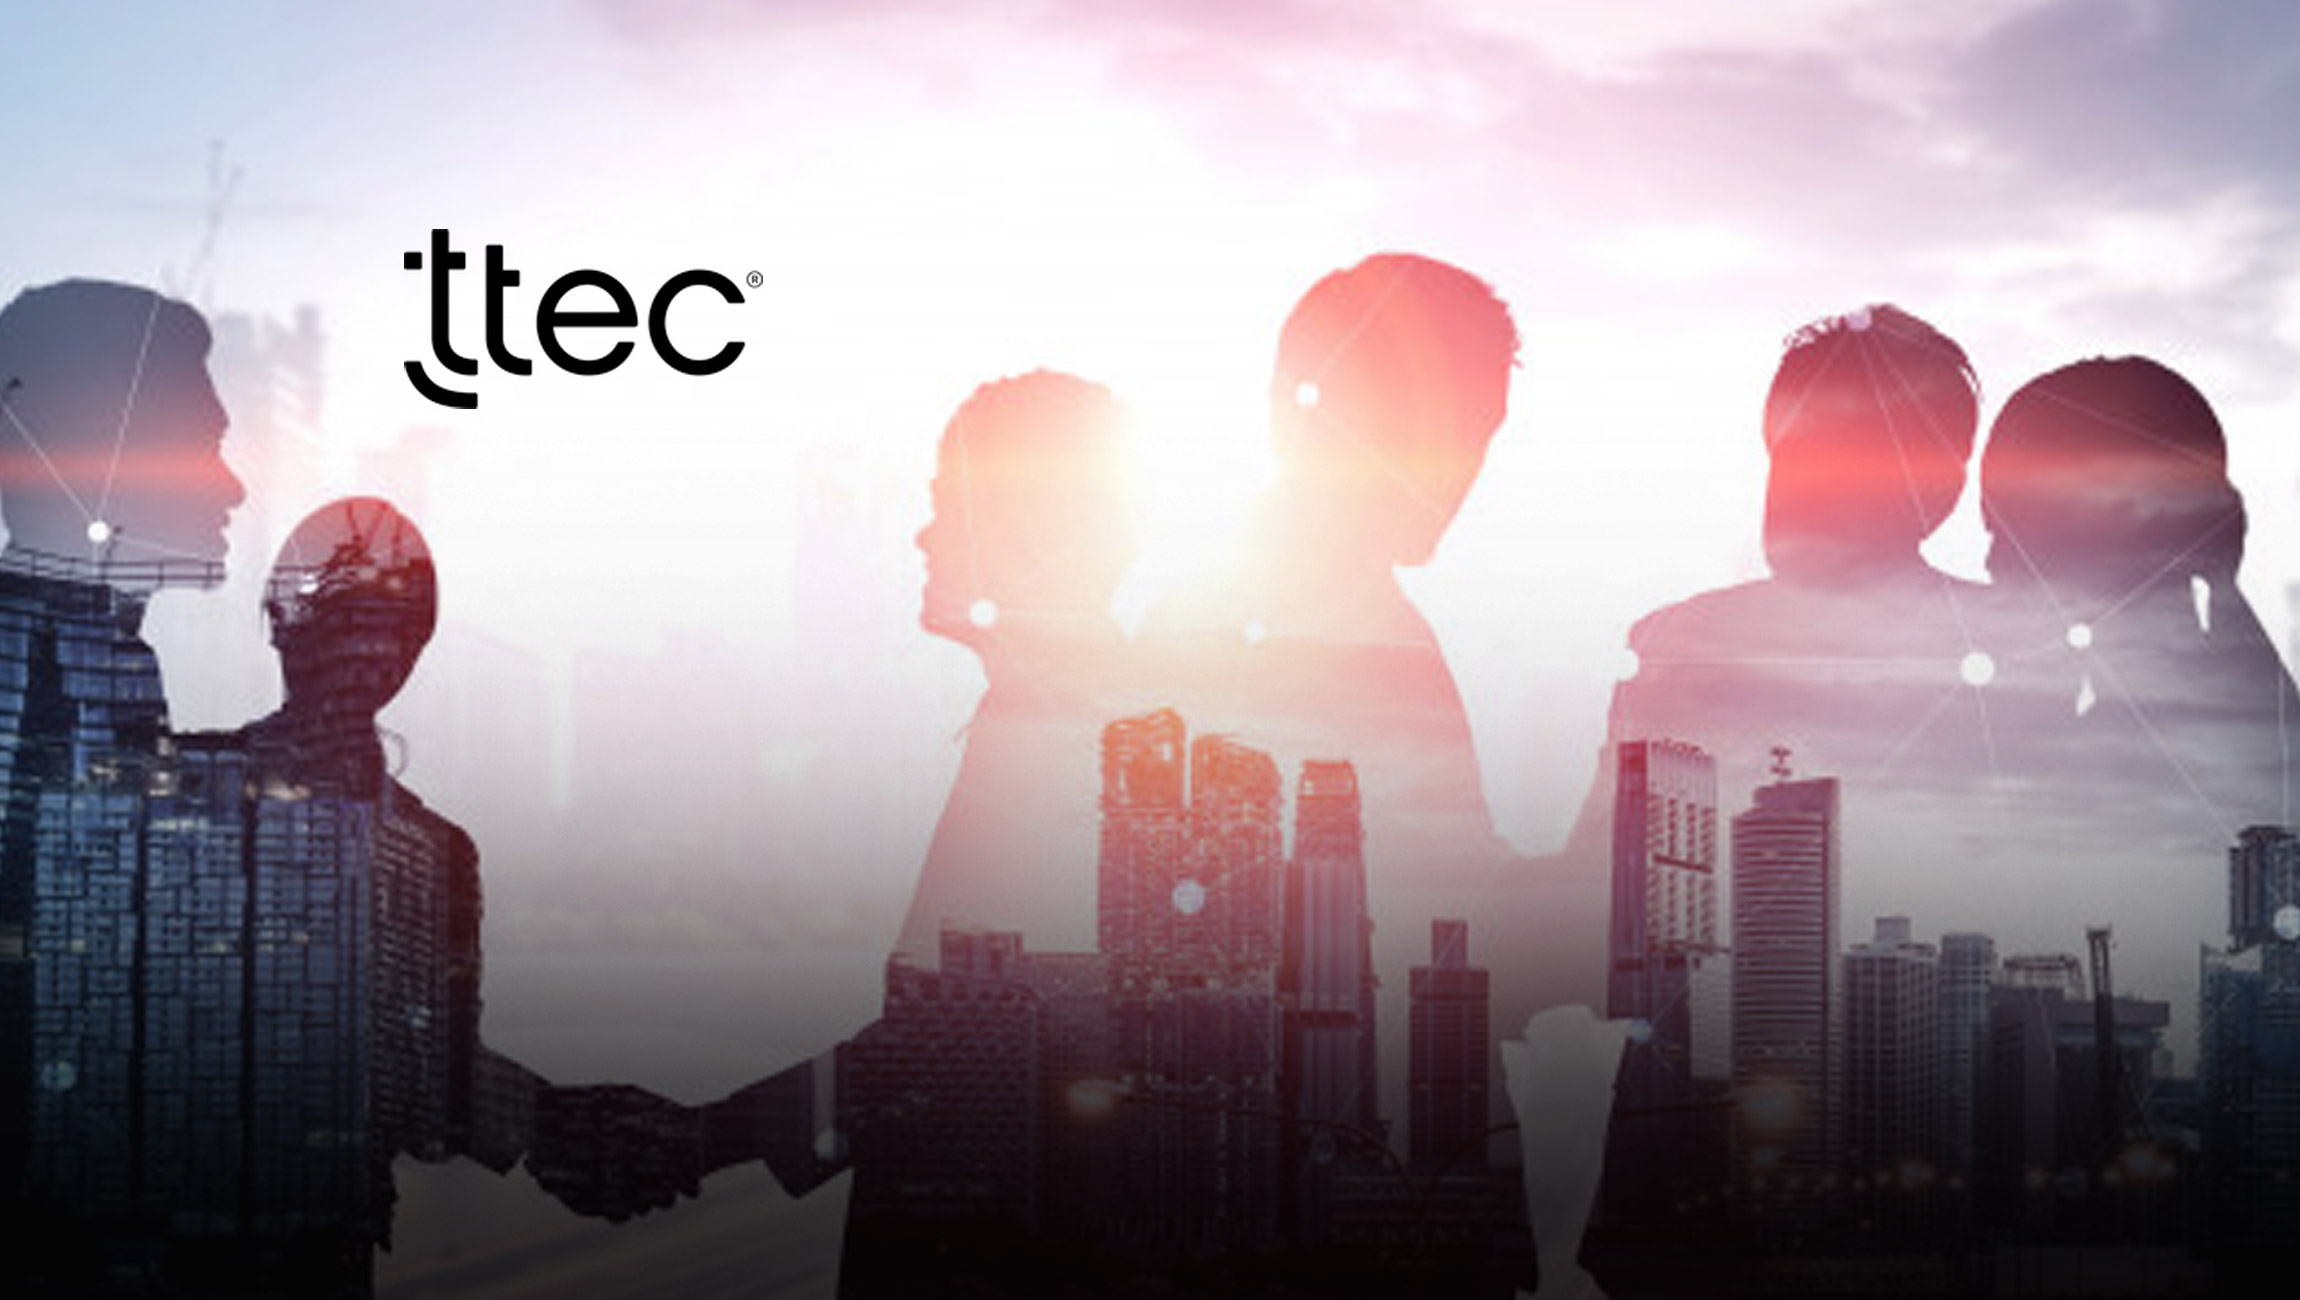 TTEC Announces New EMEA CX Service for Volkswagen Group UK With the Launch of Its Leeds Customer Engagement Centre